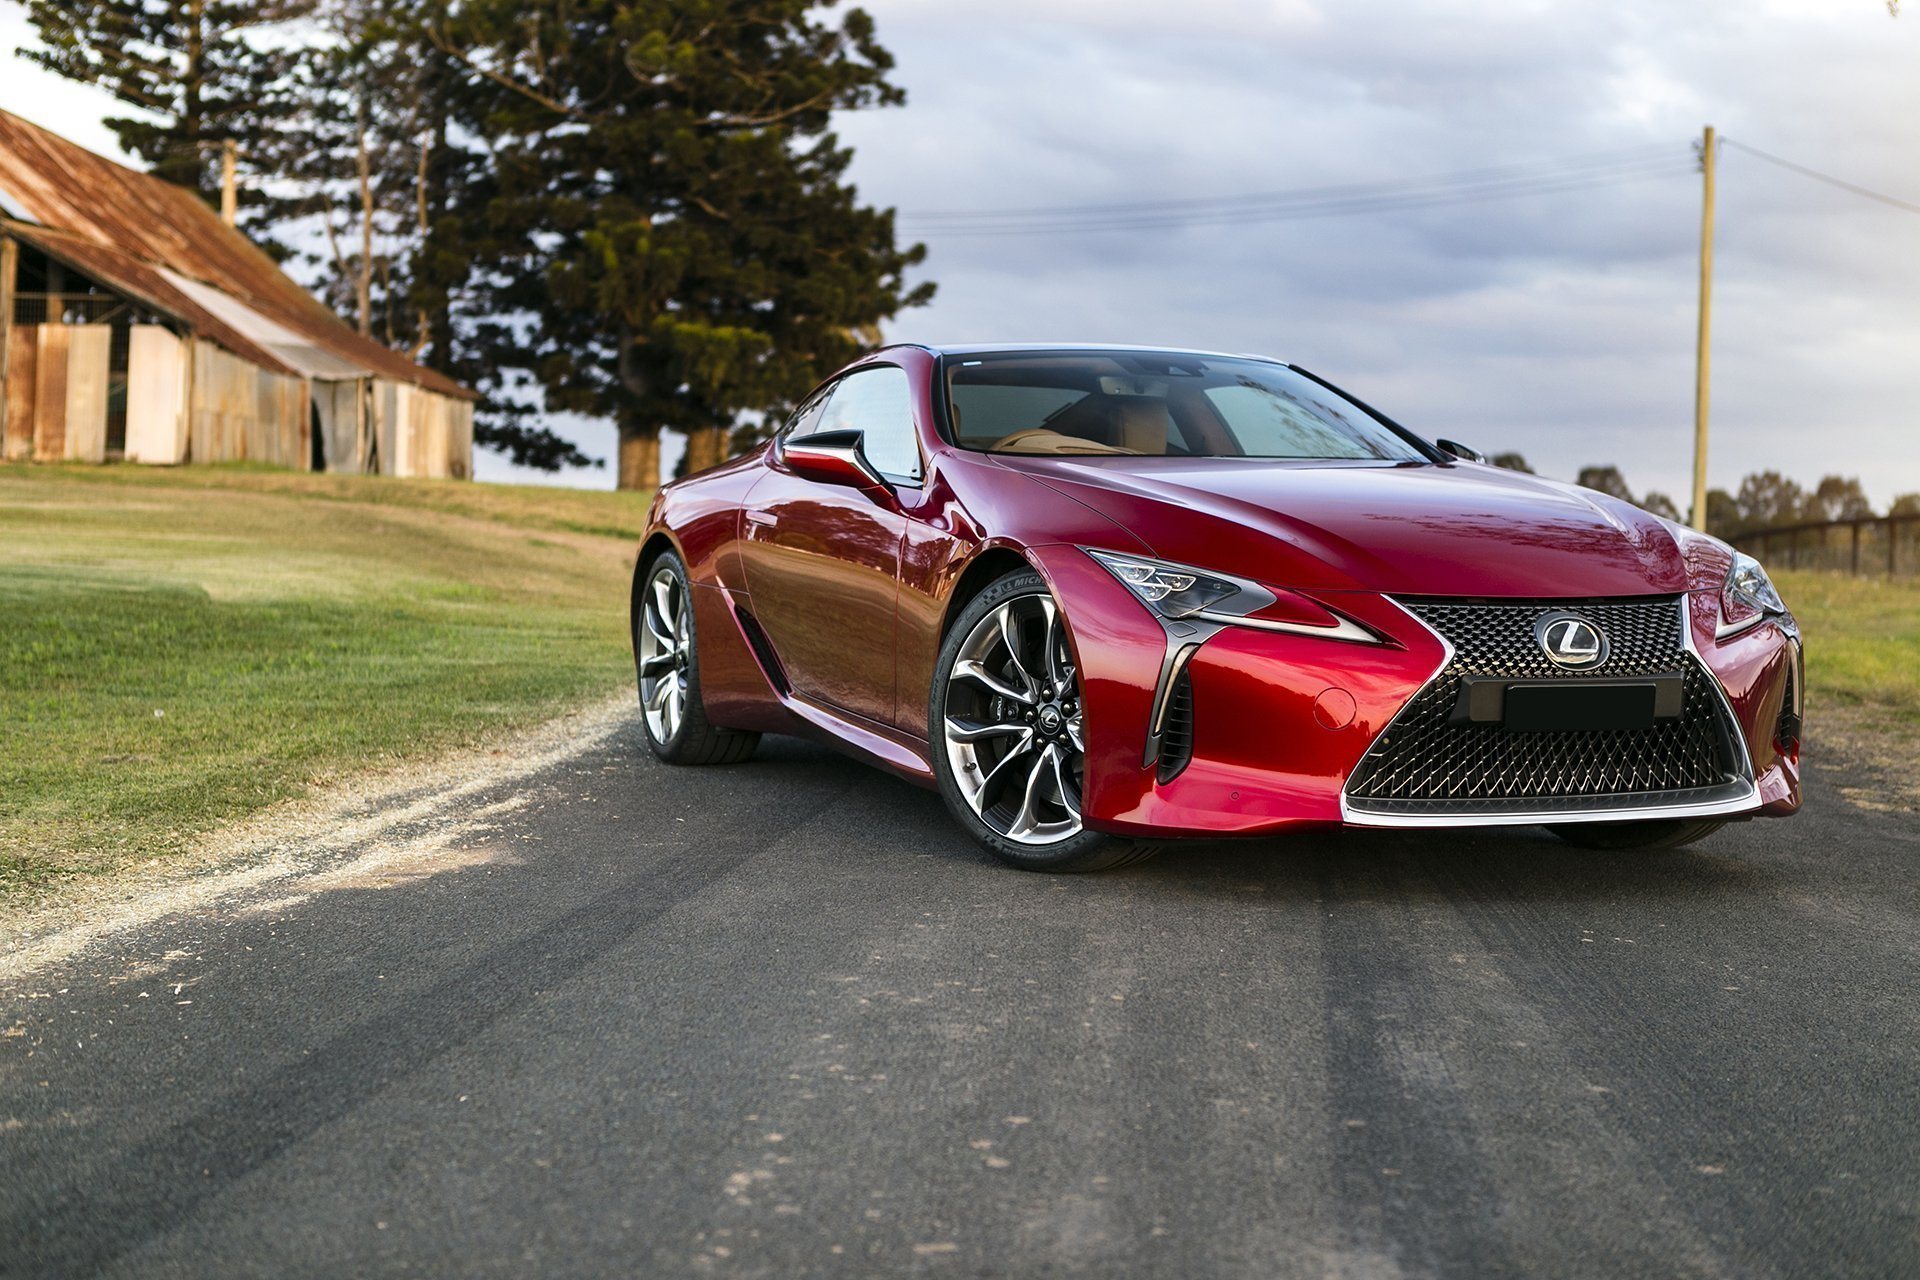 2019 Lexus LC 500 Owners Manual